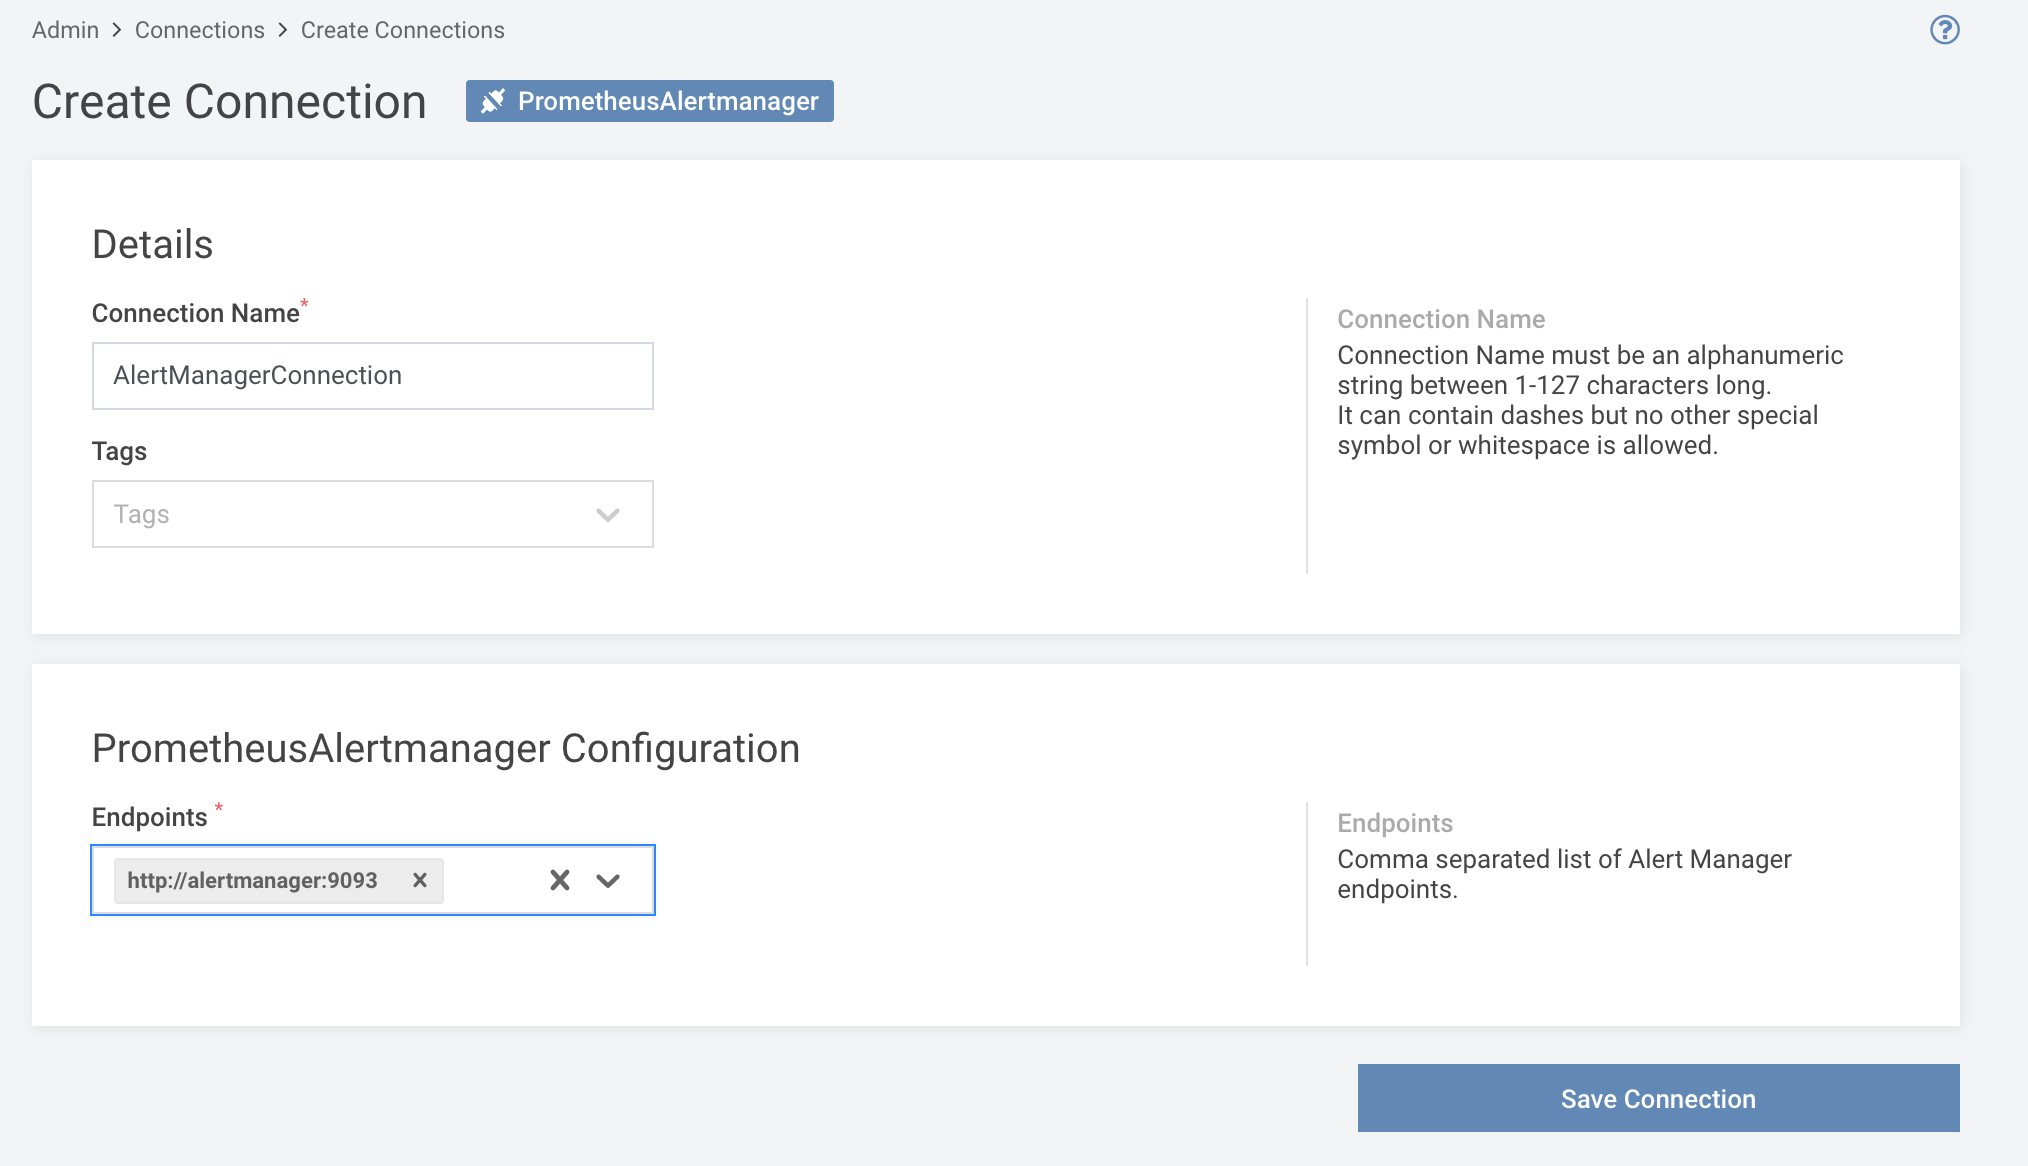 Creating a new Alertmanager connection